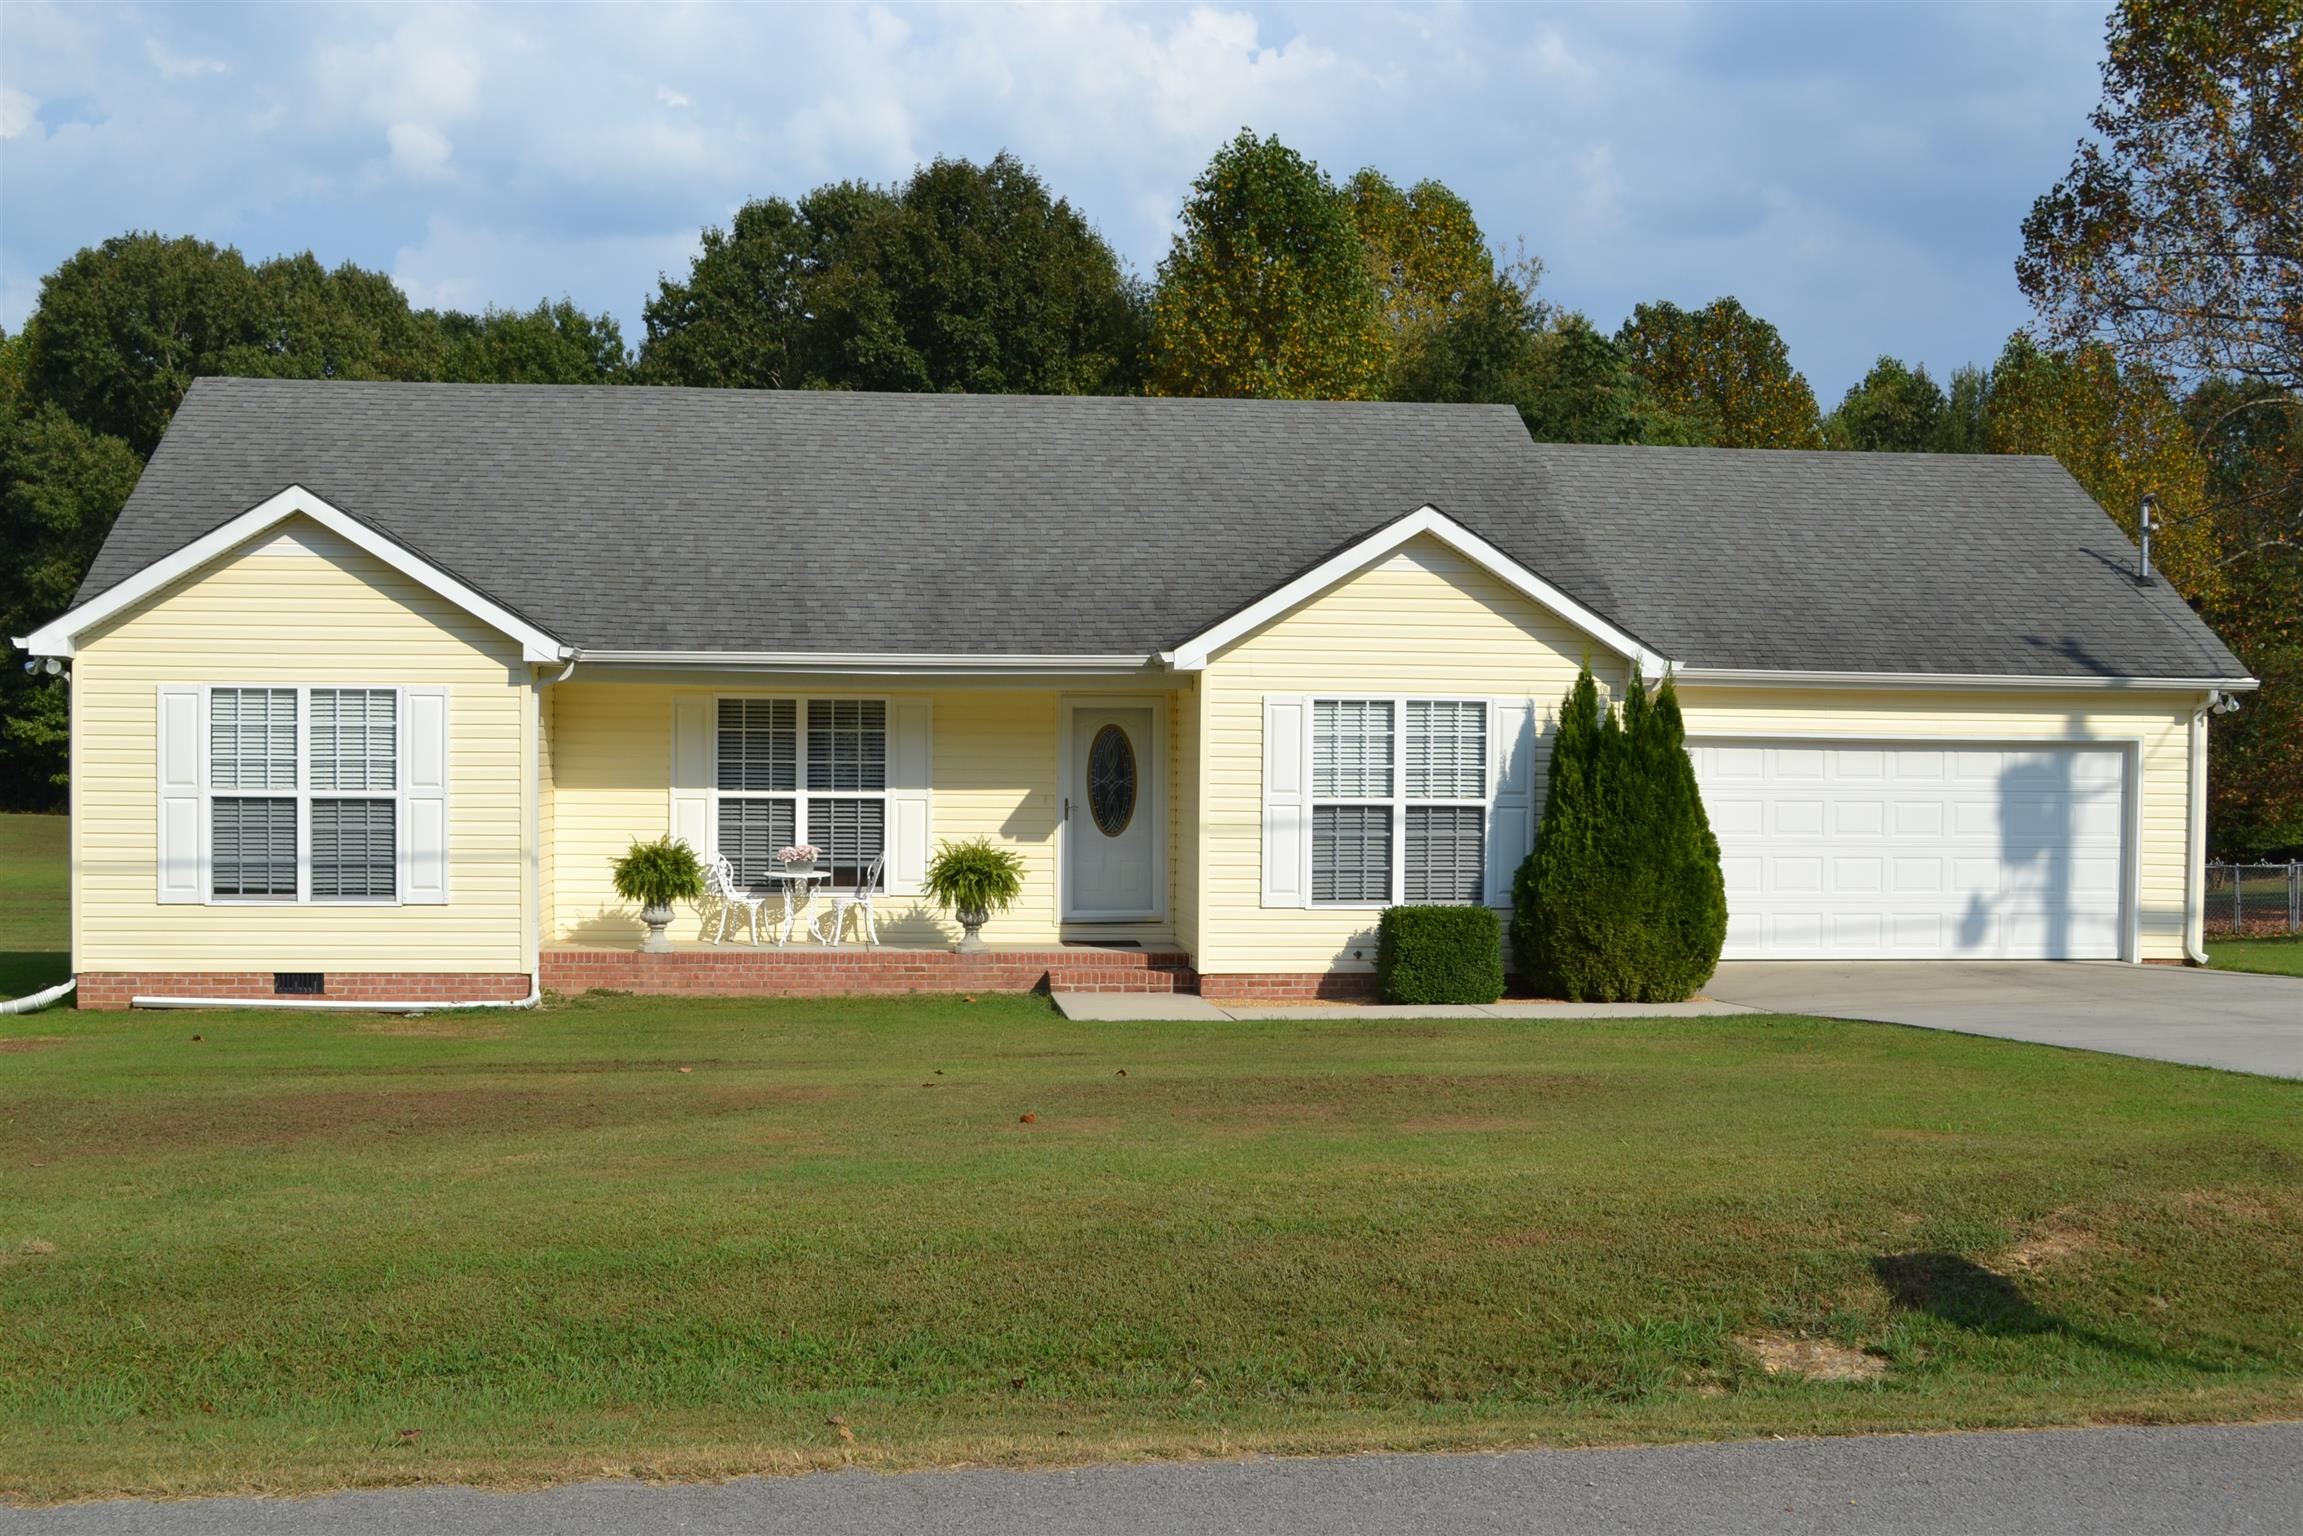 59 Lake Forrest Rd, Lynchburg, TN 37352 - Lynchburg, TN real estate listing